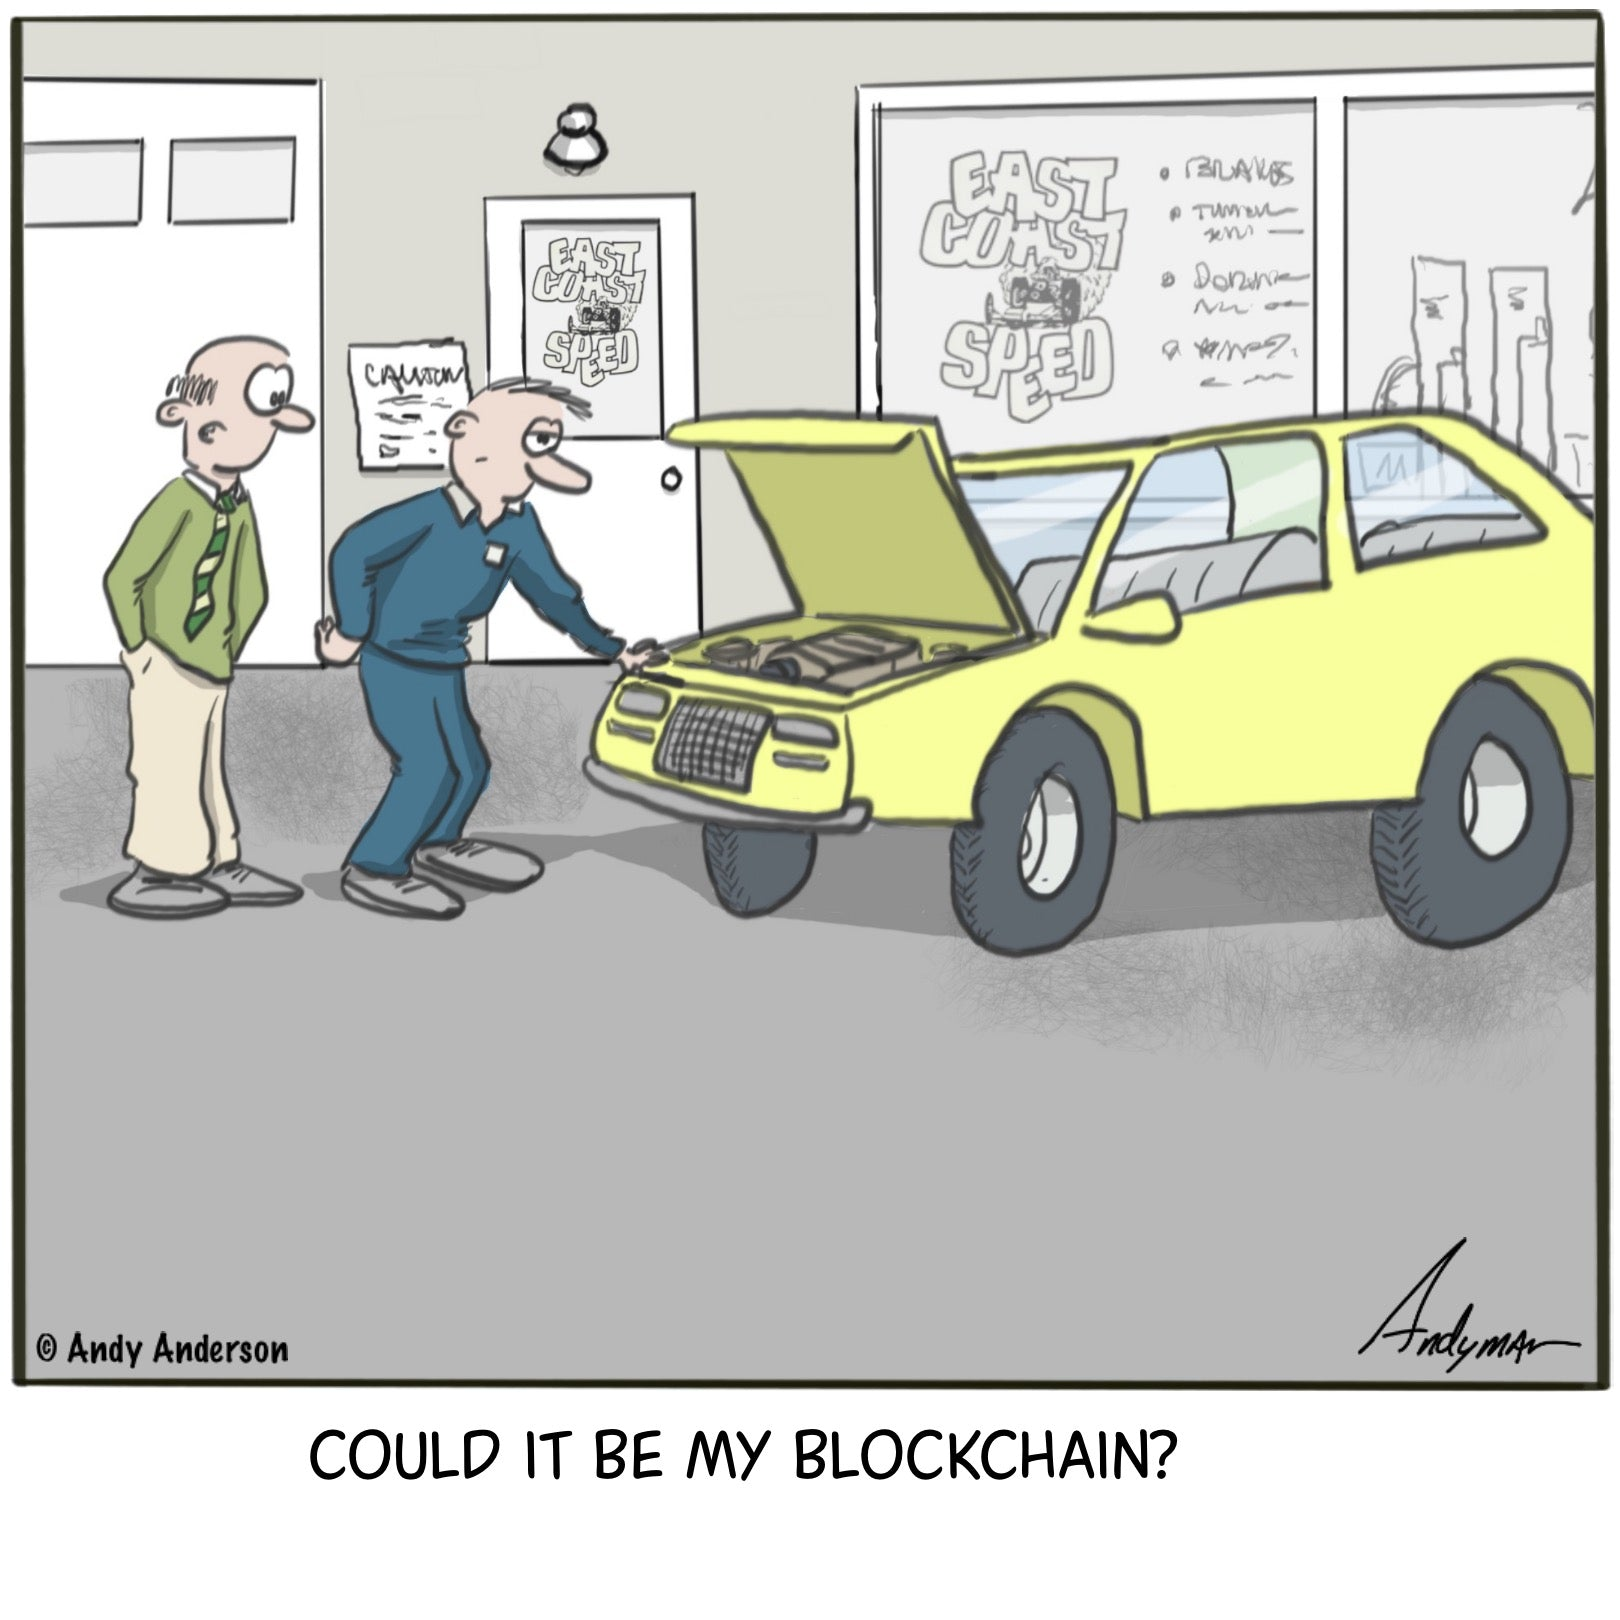 Could it be my blockchain cartoon by Andy Anderson